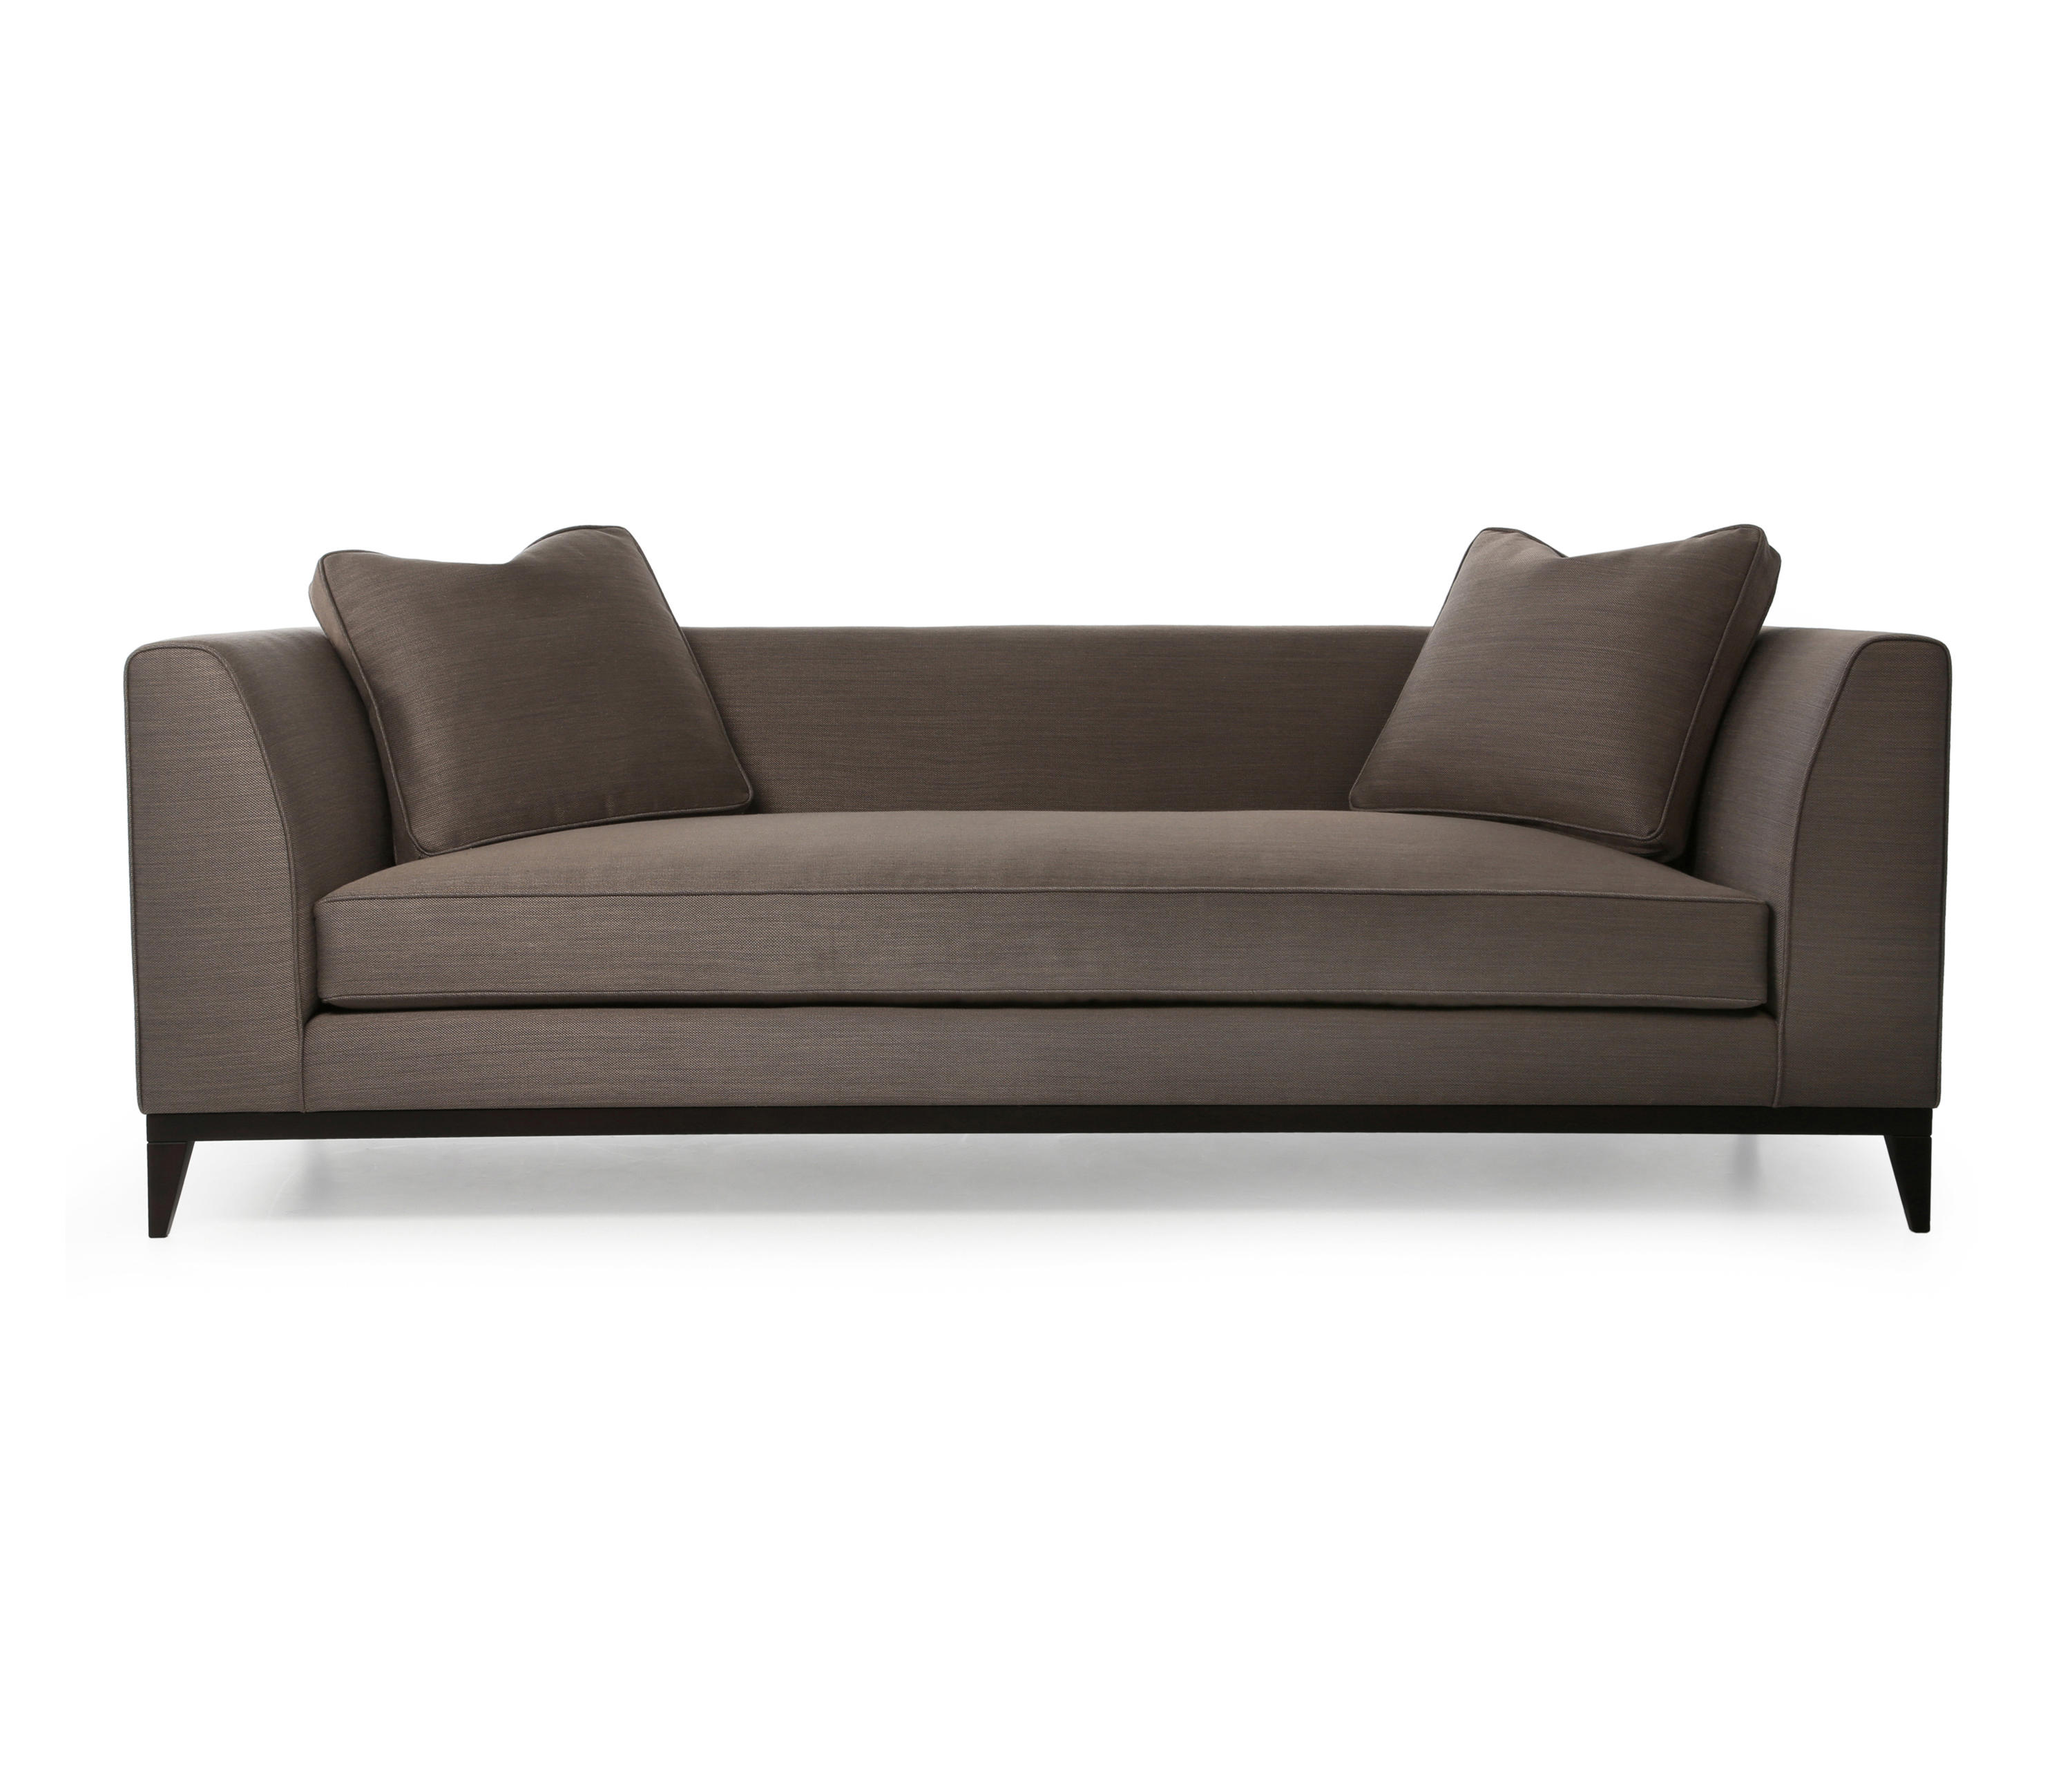 POLLOCK SOFA Sofas from The Sofa & Chair pany Ltd